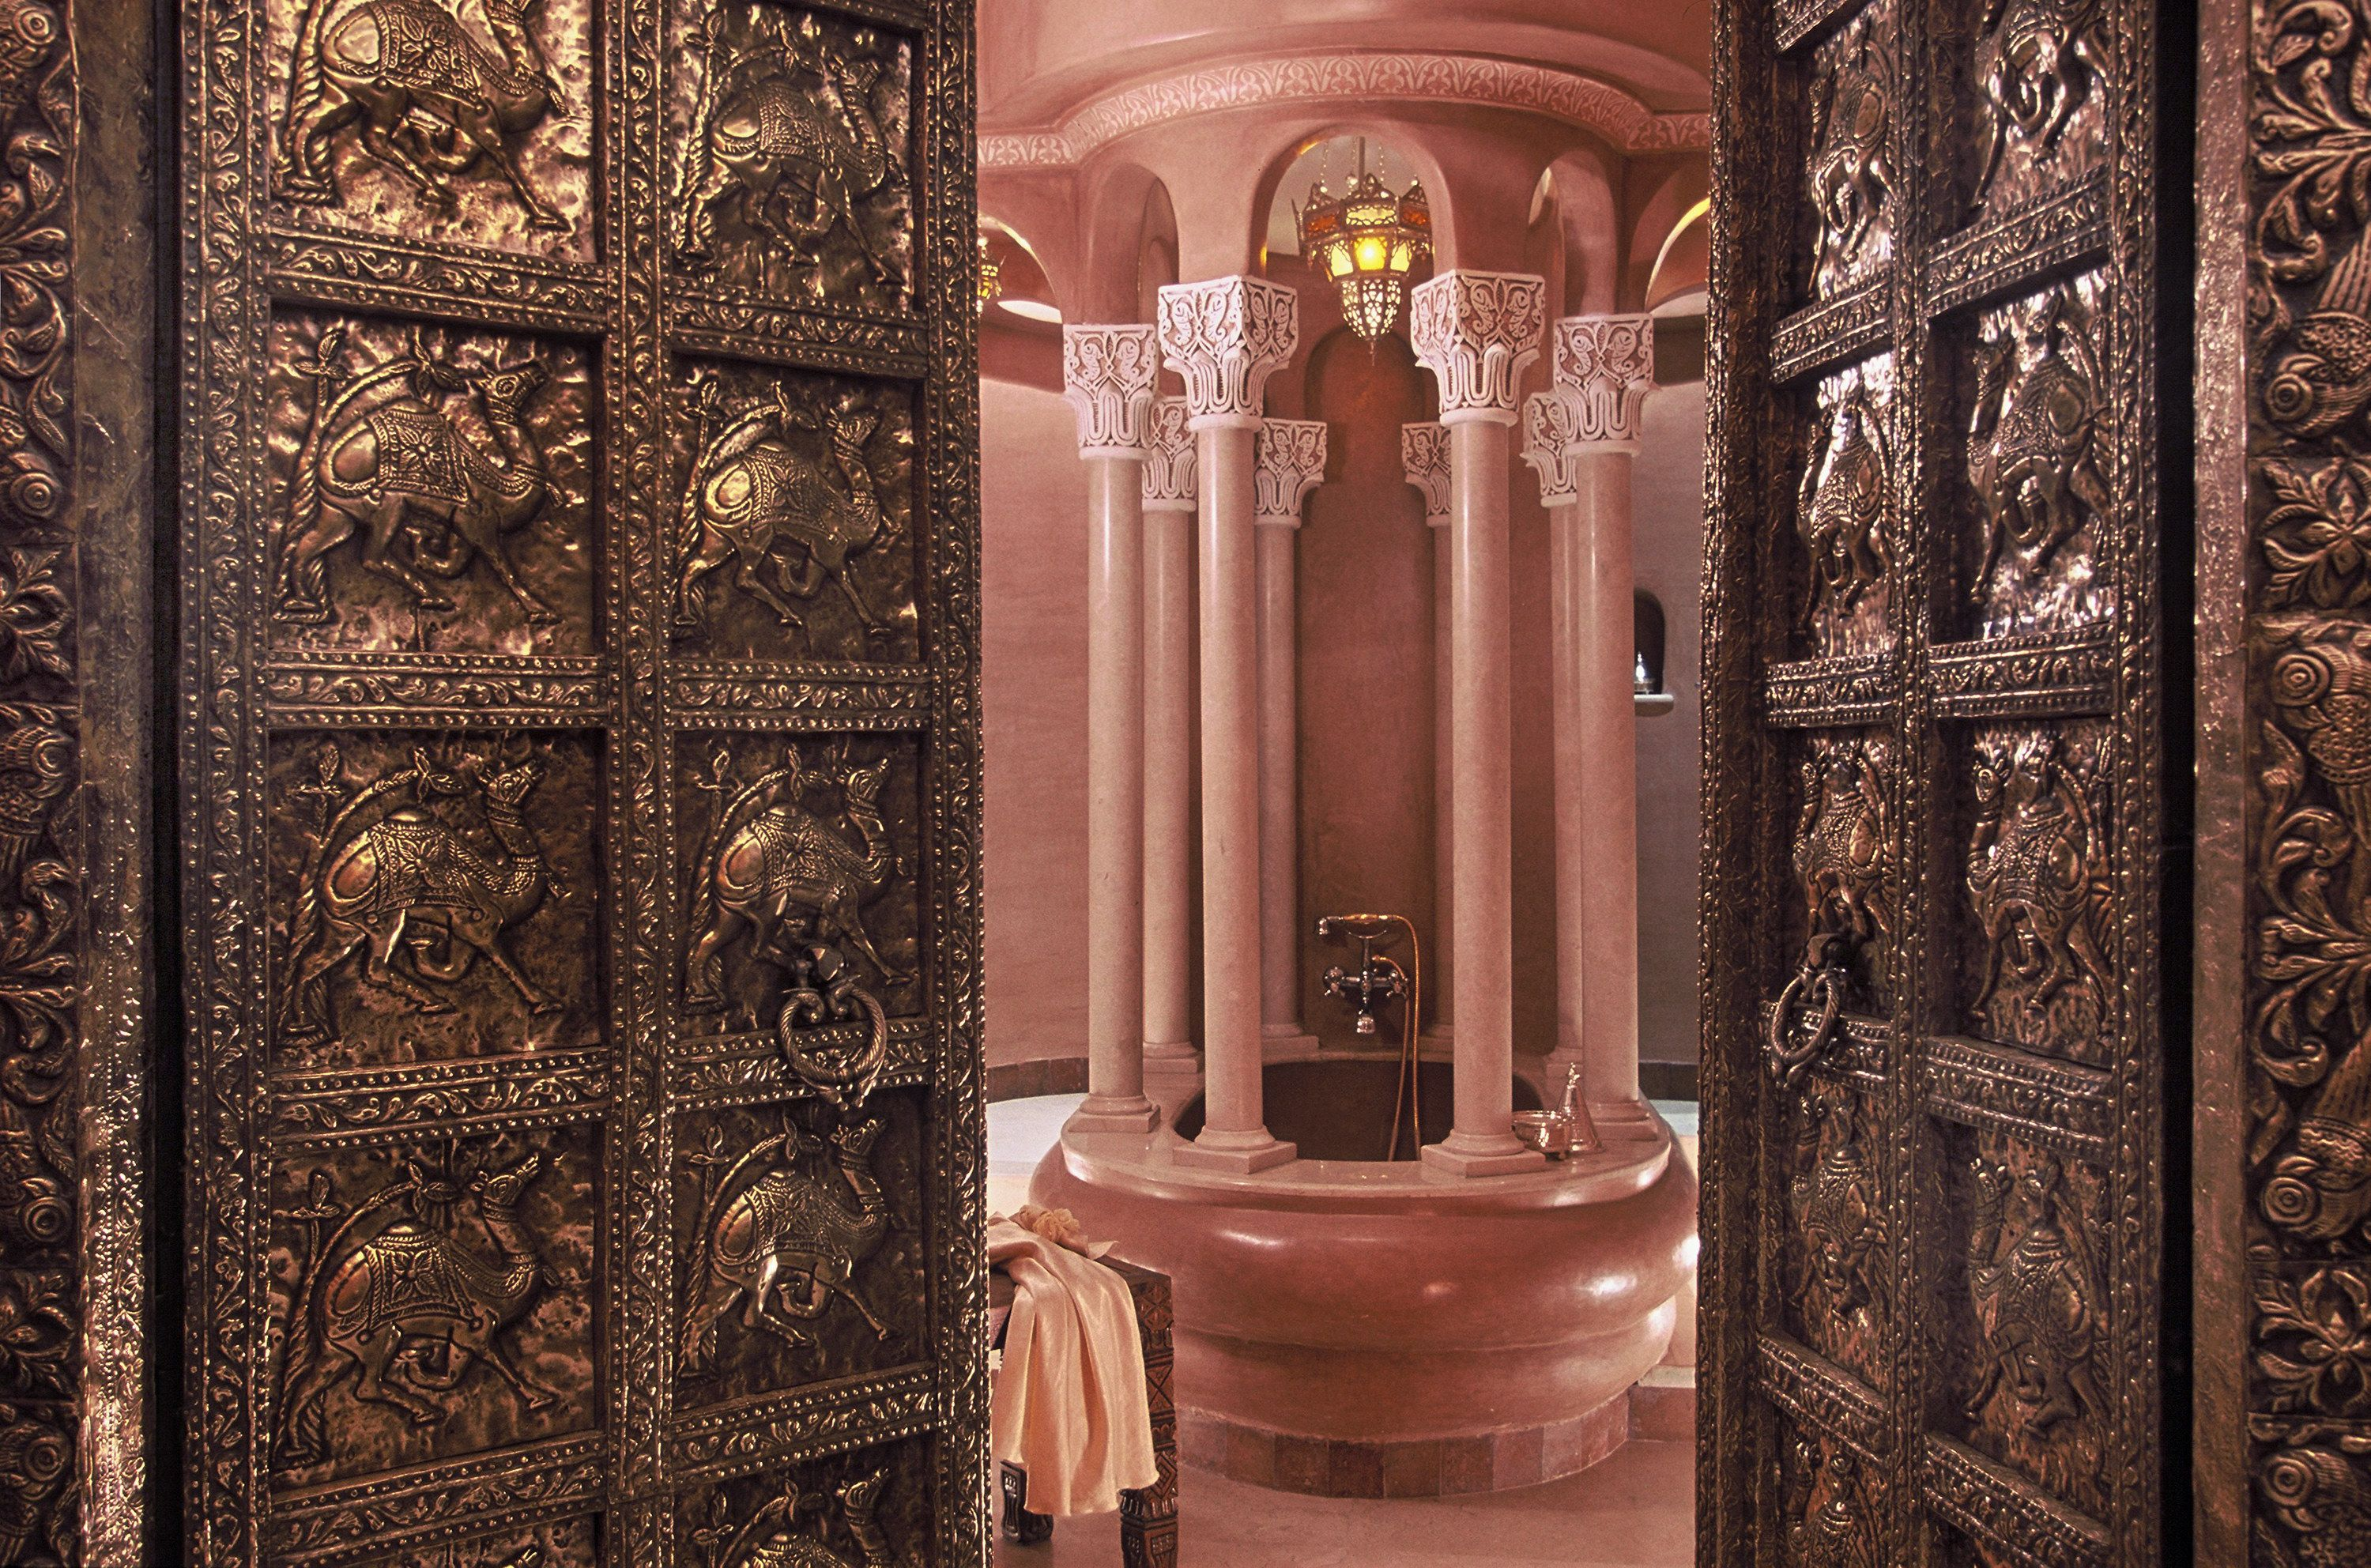 Image result for Dromadaire Suite, La Sultana, Marrakech bathroom